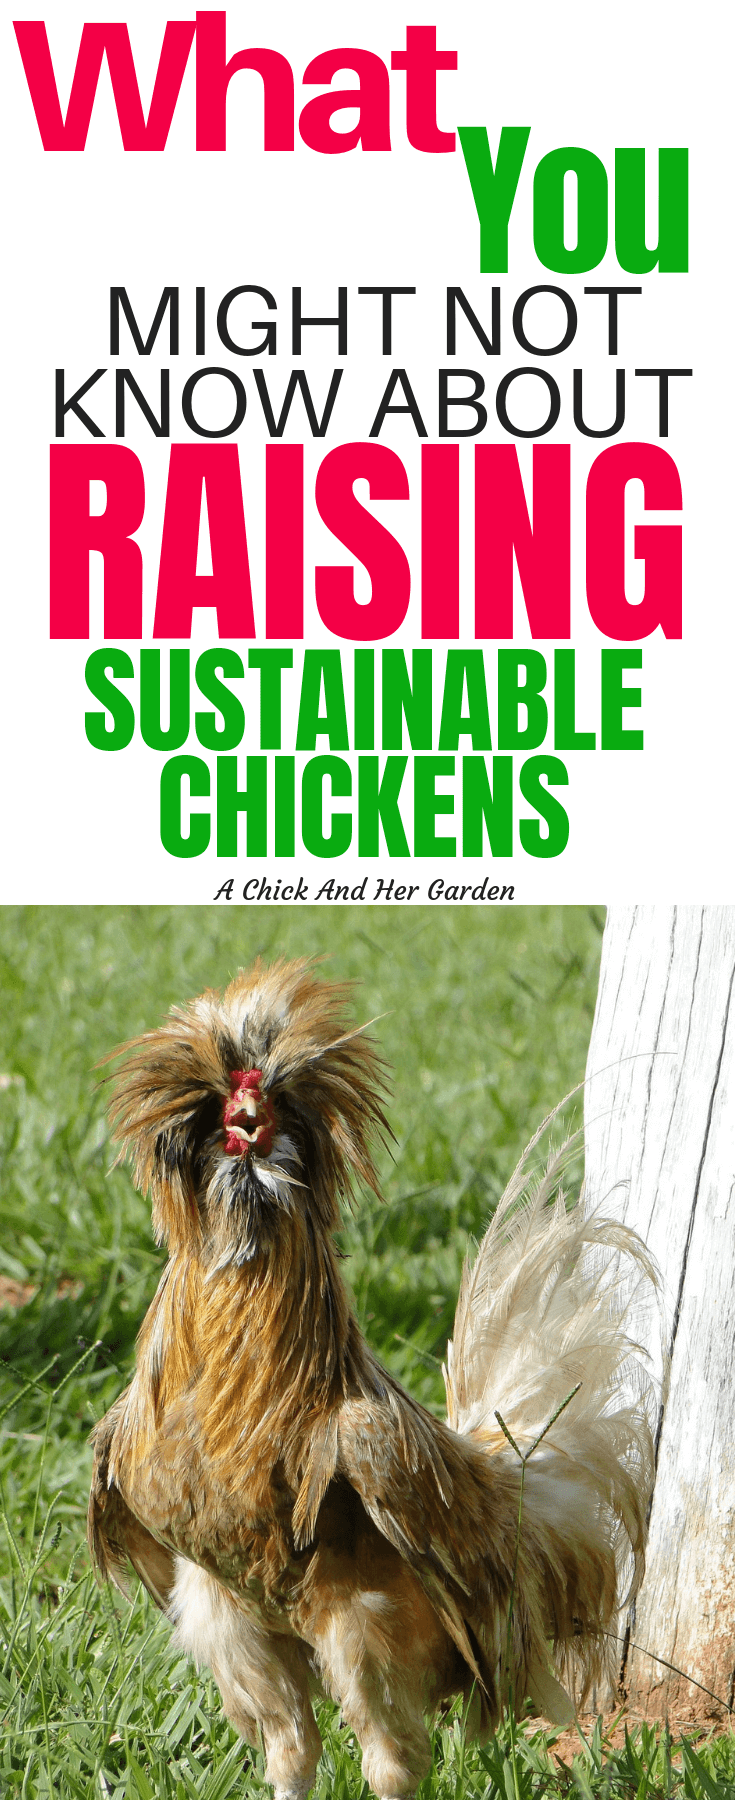 After reading her post I was shocked at how important it is for us to be raising heritage breed chickens! I have some but will be considering what new chicken breeds I can add to the flock! #sustainablechickens #sustainablelivestock #raisingchickens #backyardchickens #achickandhergarden